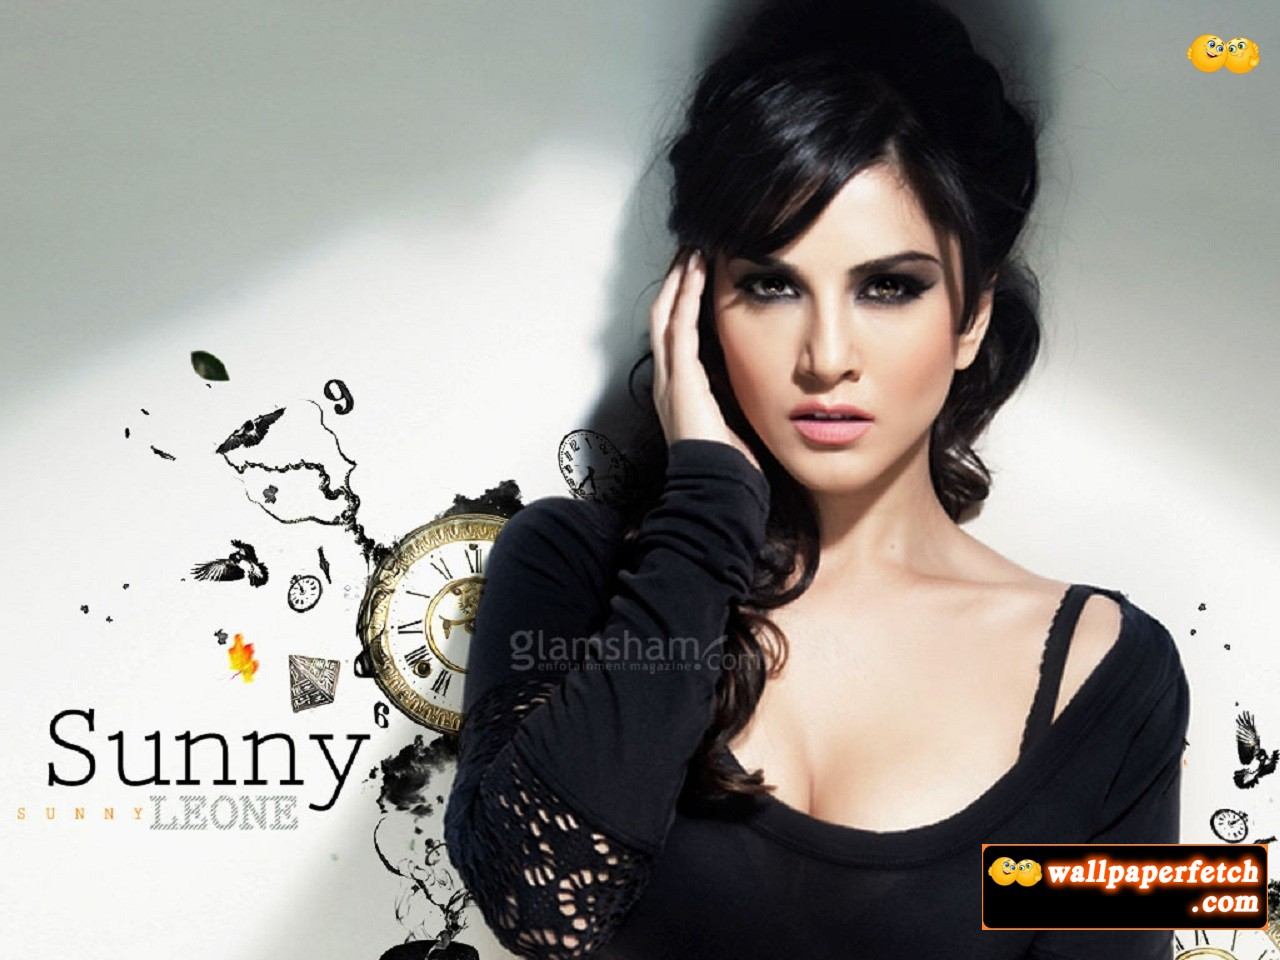 Wallpaper Fetch Sunny Leone Hot Wallpapers 2012-9851